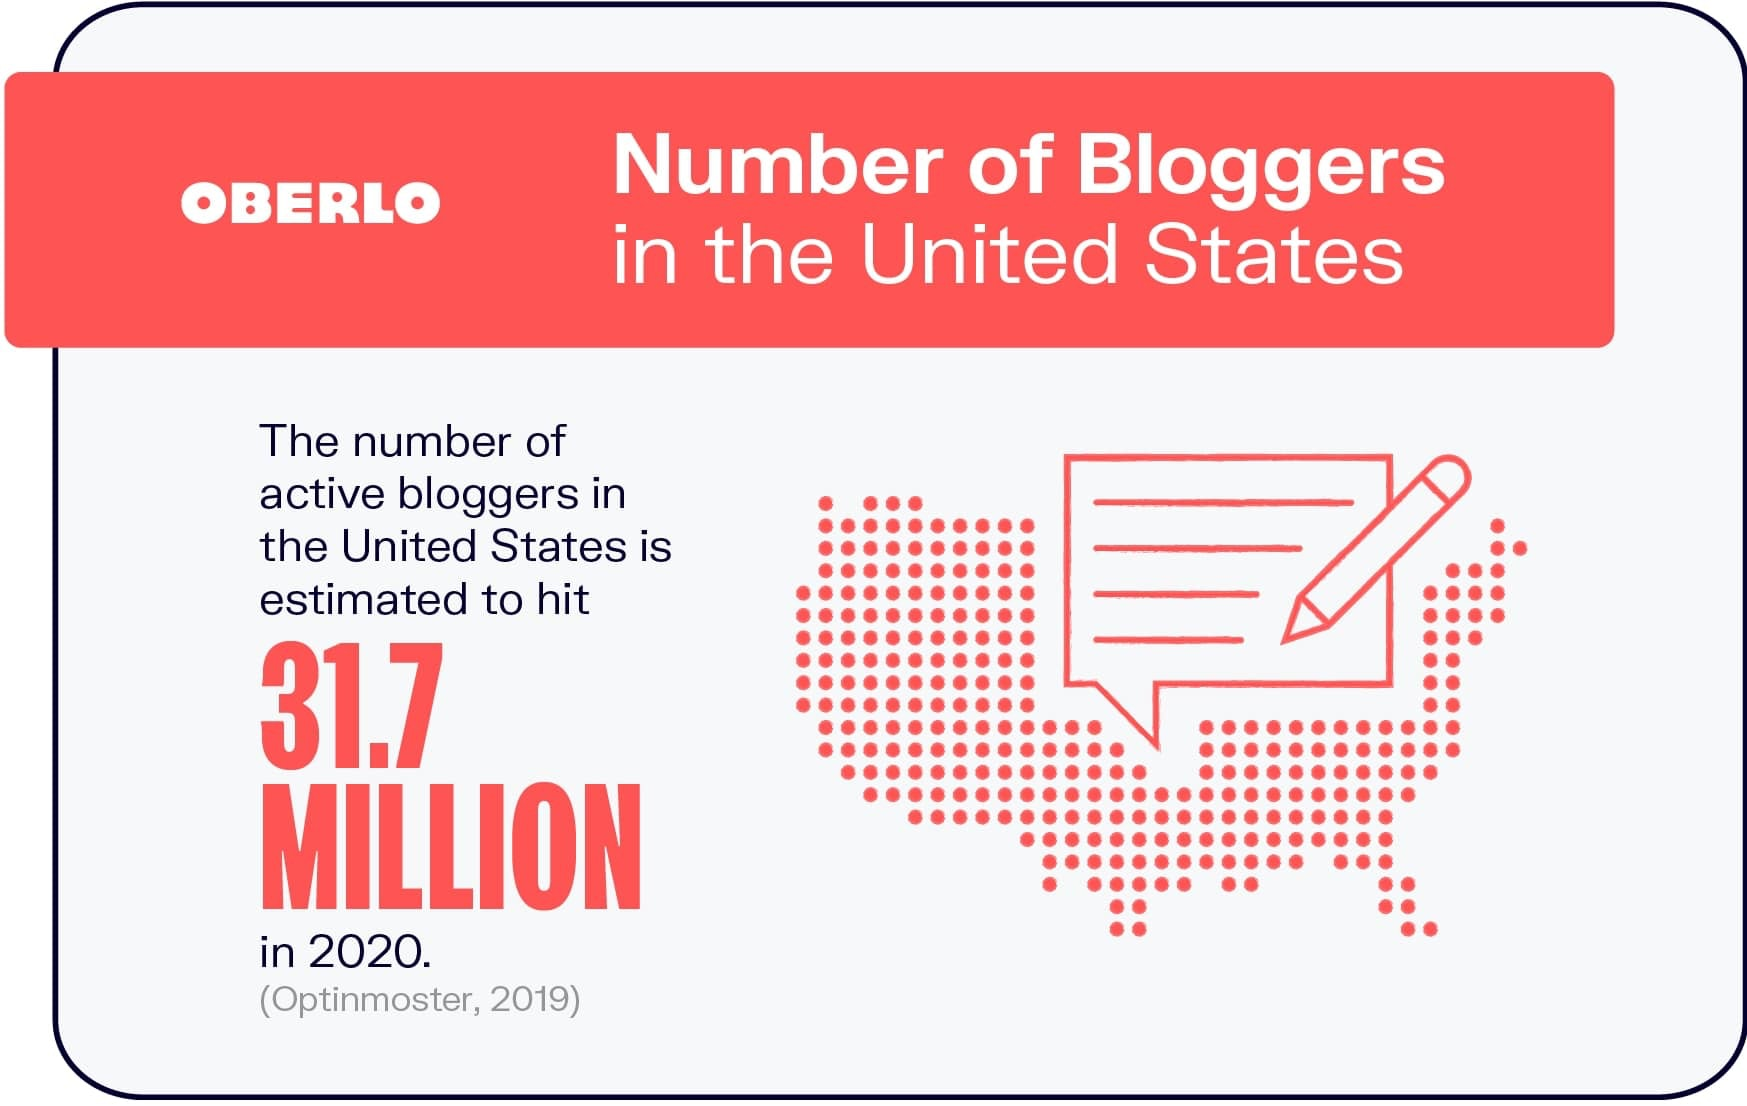 How Many Bloggers Are There in the United States?